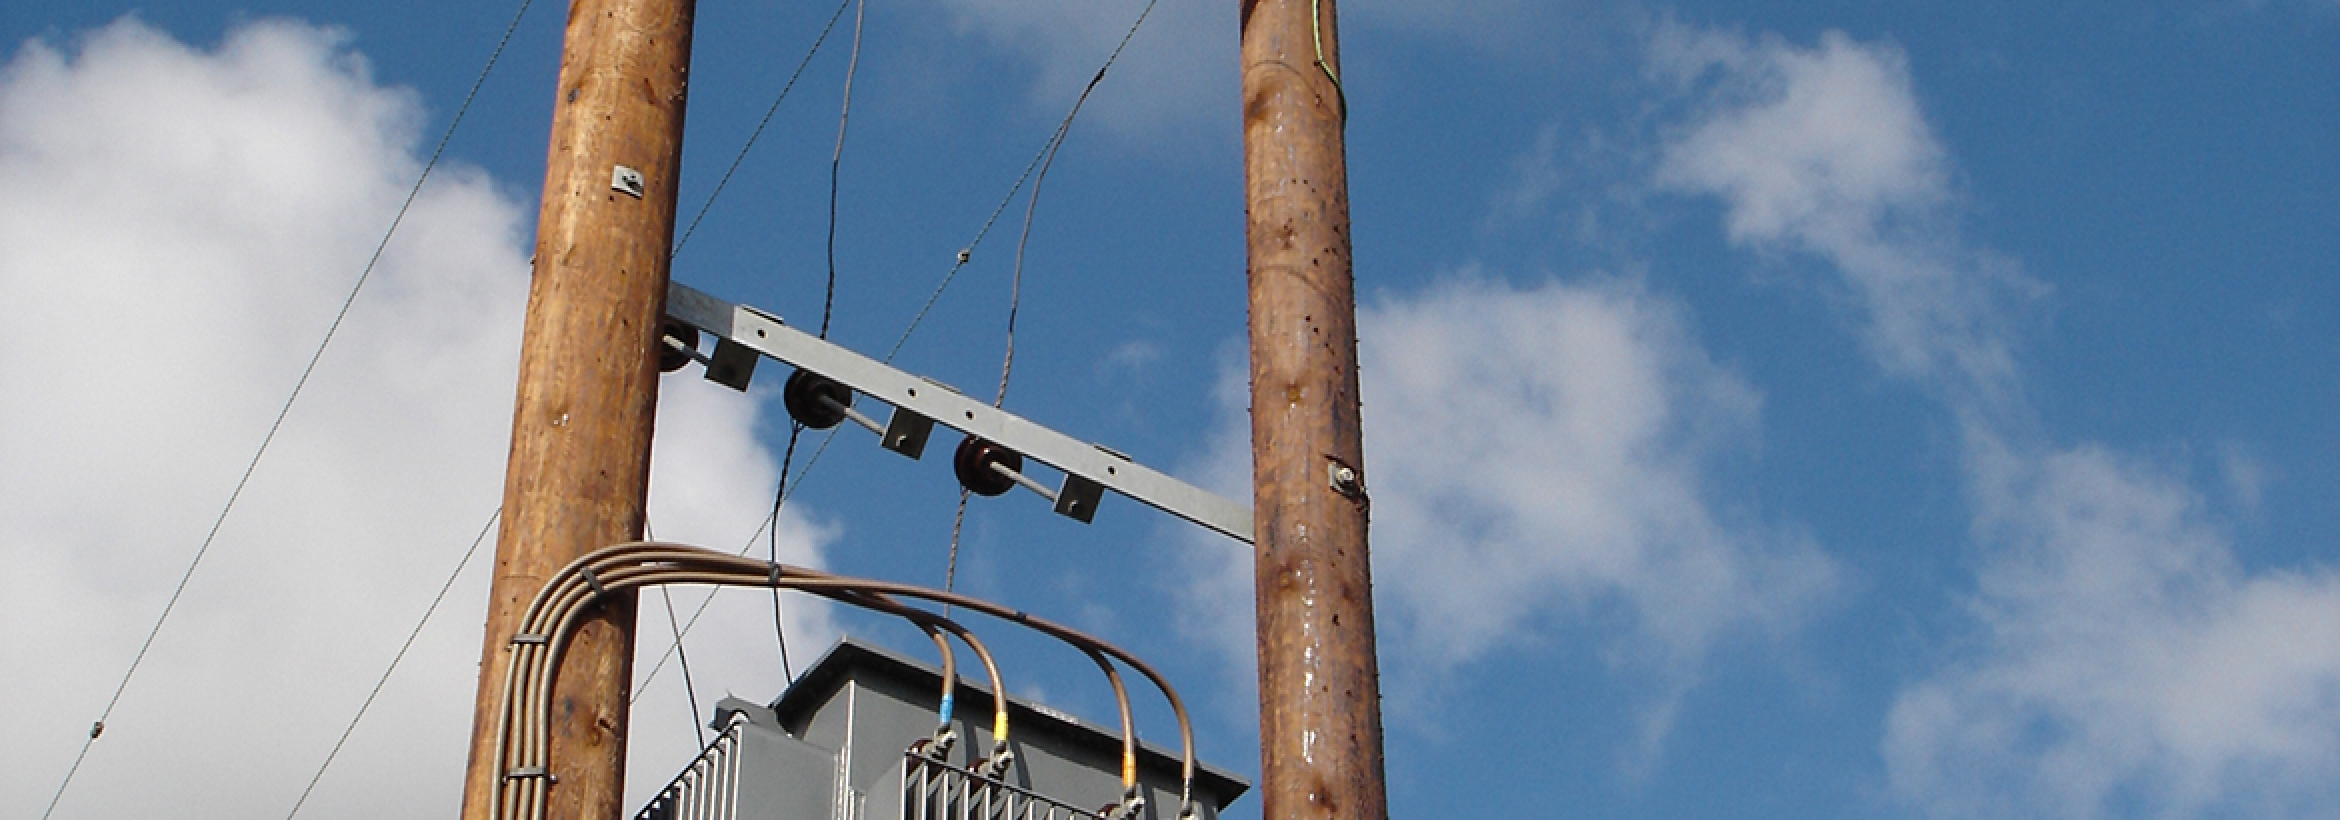 Electricity transformer on overhead poles representing NFU Energy's connections planning service